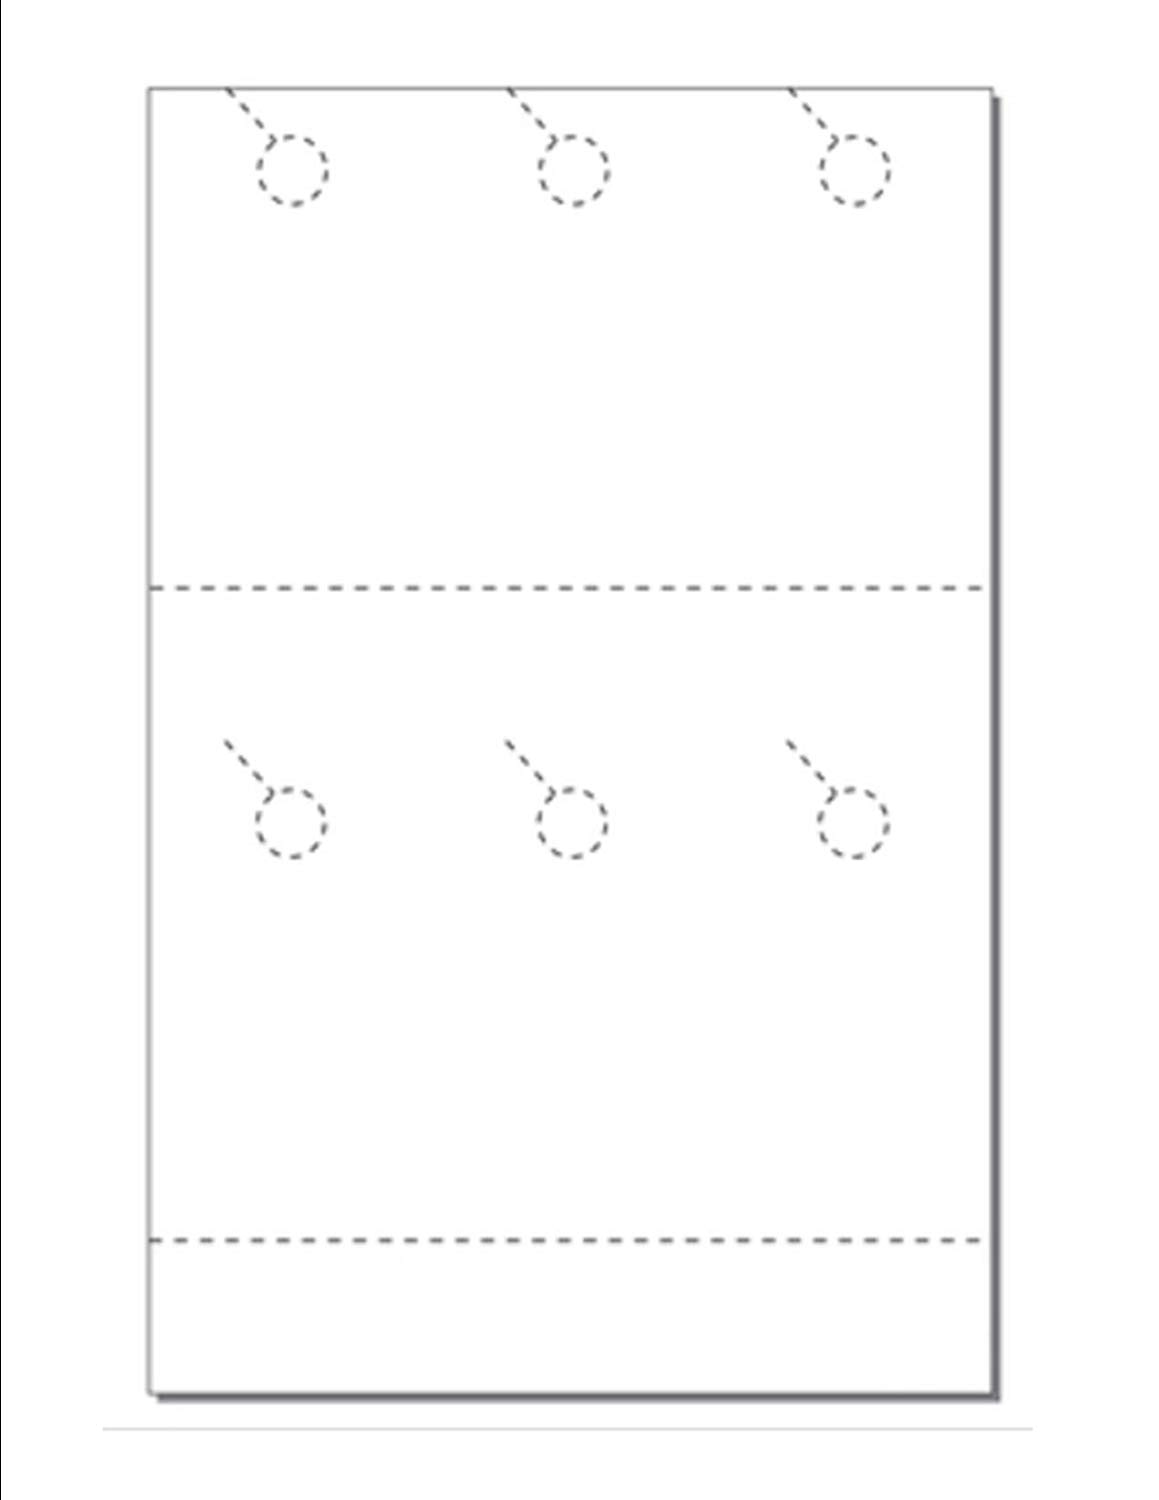 """Print-Ready Door Hanger w 2-inch Perfed Coupon (3-1/2"""" x 8-1/2""""), 6-UP on 11"""" x 17"""" White 67lb Vellum Paper - 250 Sheets (1500 Hangers)"""